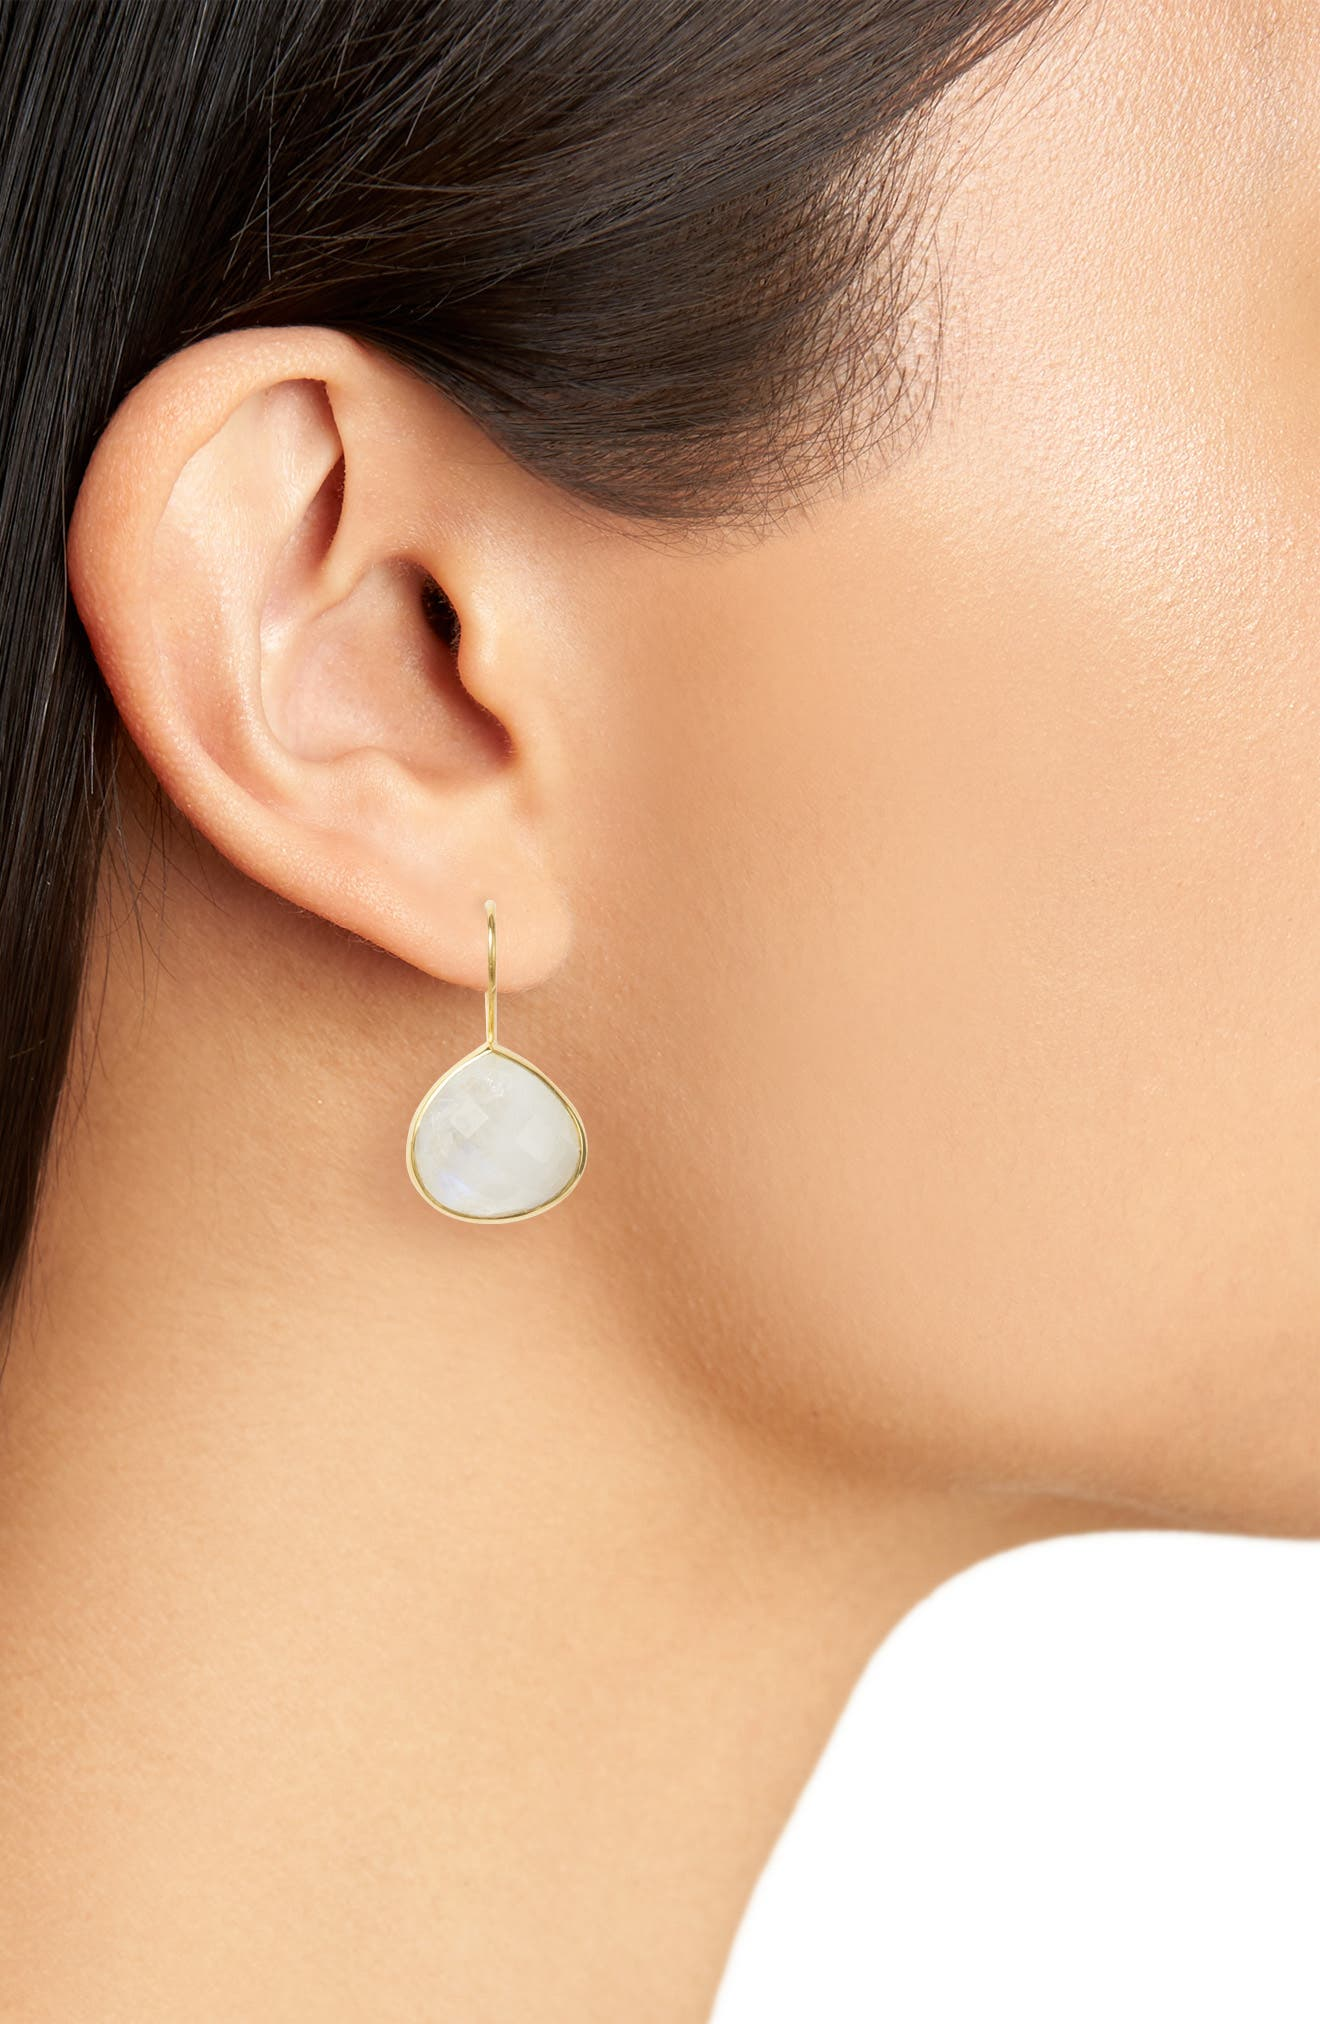 Turks and Caicos Stone Drop Earrings,                             Alternate thumbnail 2, color,                             MOONSTONE